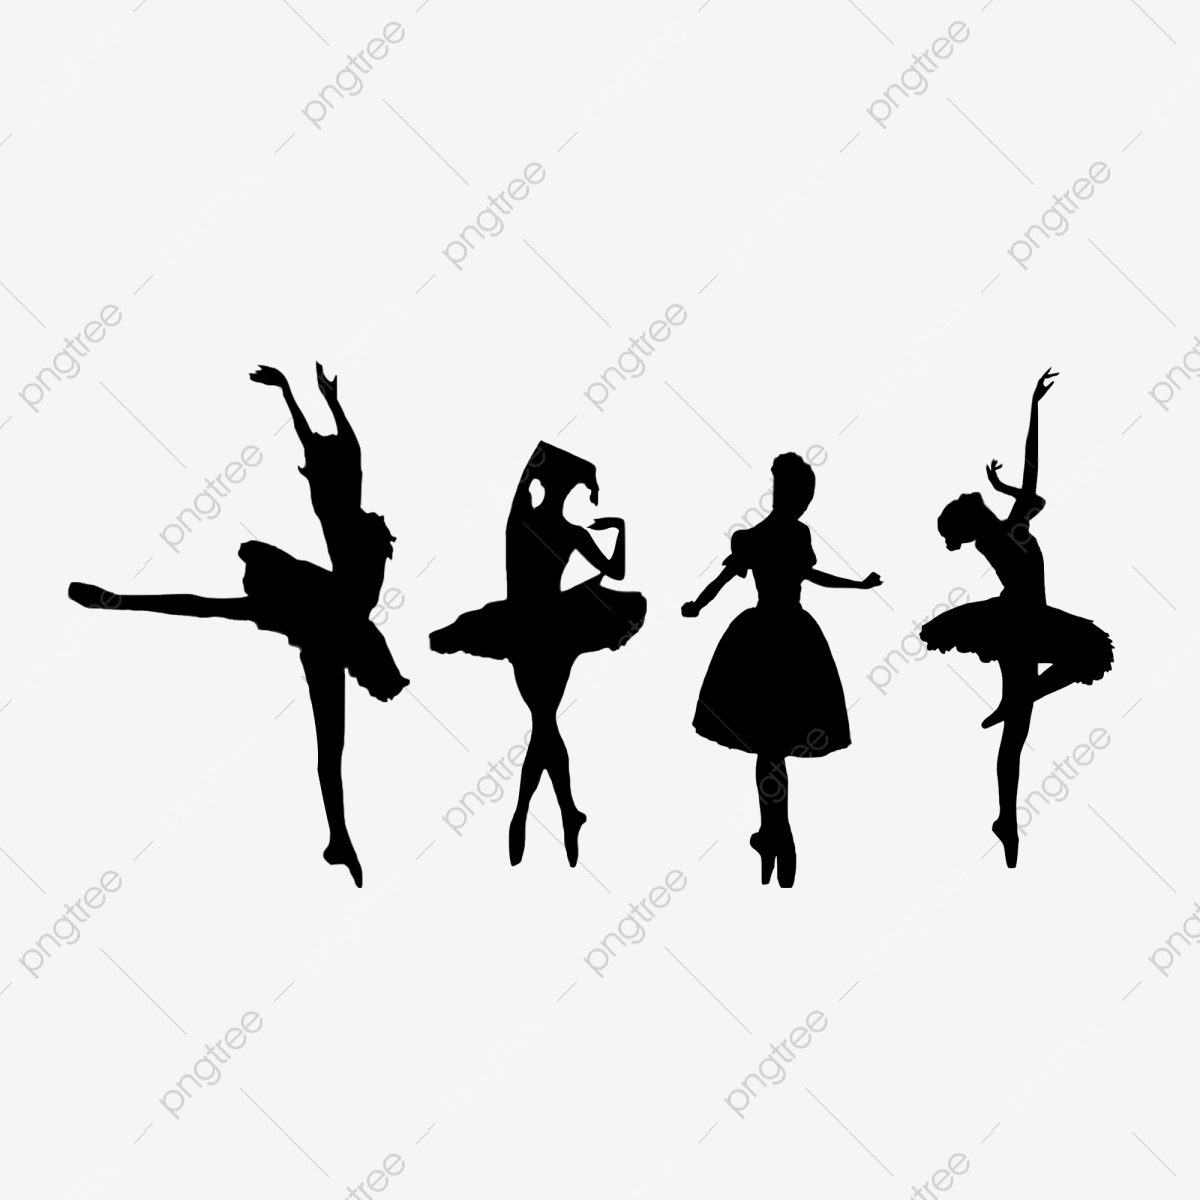 Cartoon Black Dance Silhouette Cartoon Black Dance Png Transparent Clipart Image And Psd File For Free Download